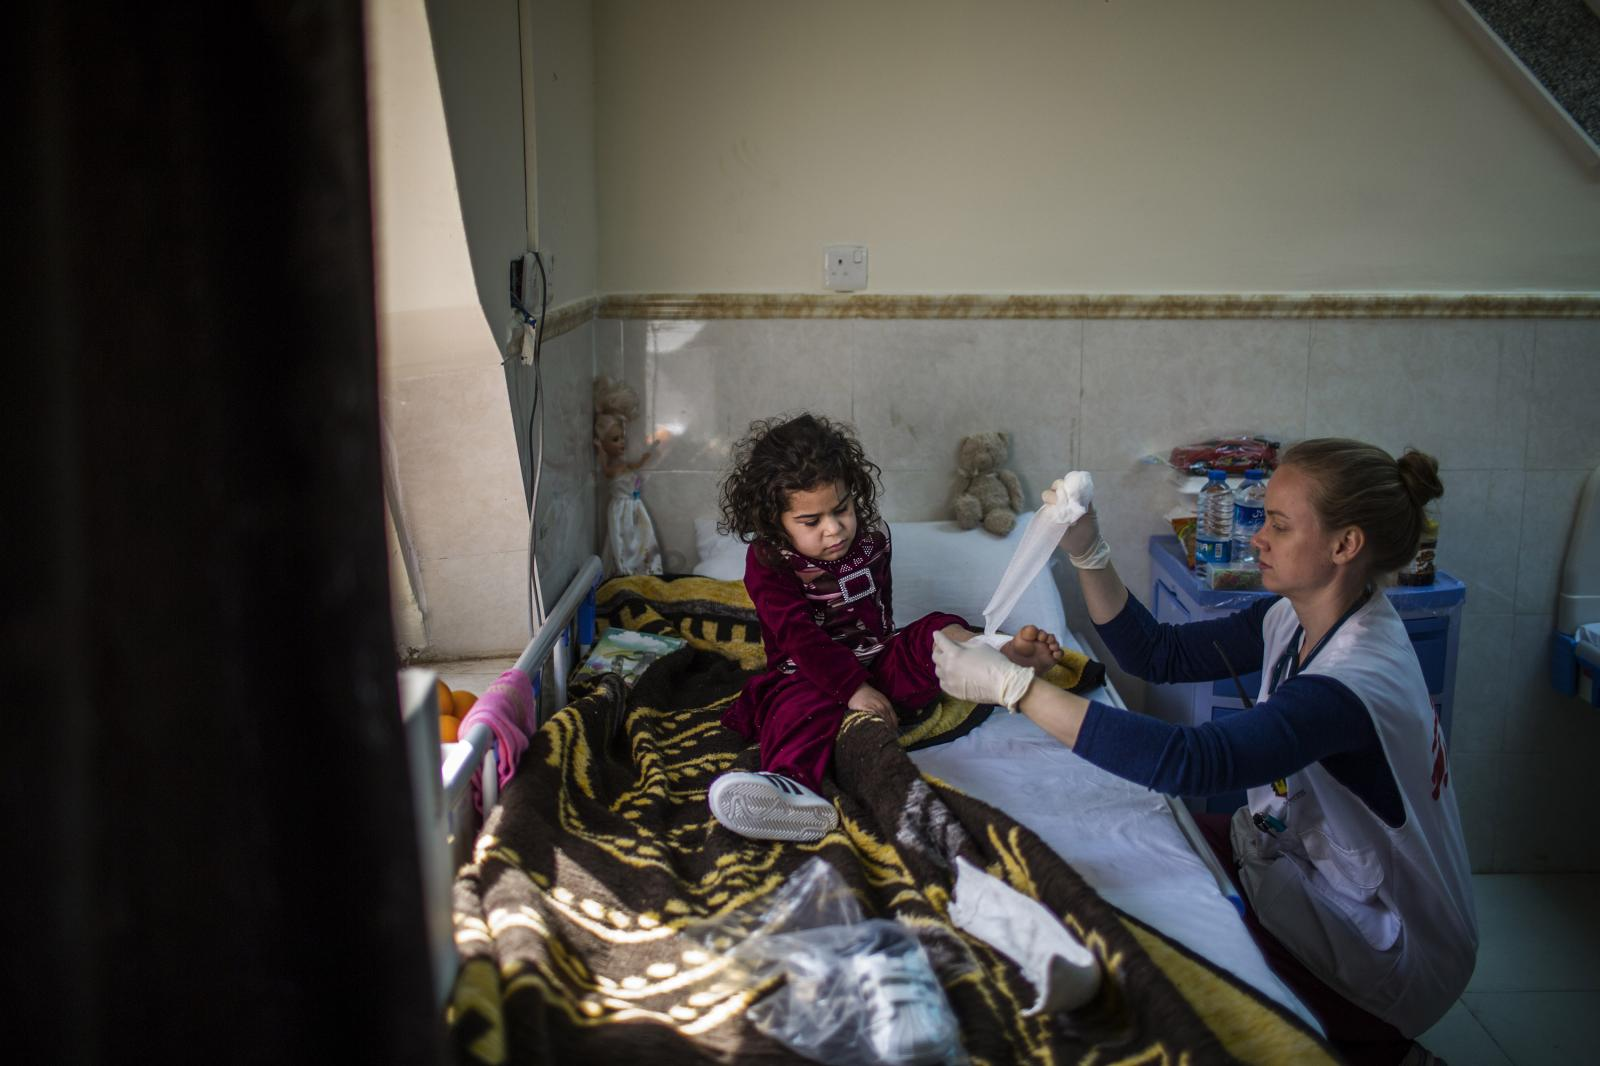 A MSF worker changes the Bandage of Faten, an Iraqi five years old from Mosul. She was injured when she was playing in a garden. She is crying in the night. Hamdaniya, Iraq 2017. Diego Ibarra Sánchez for MSF